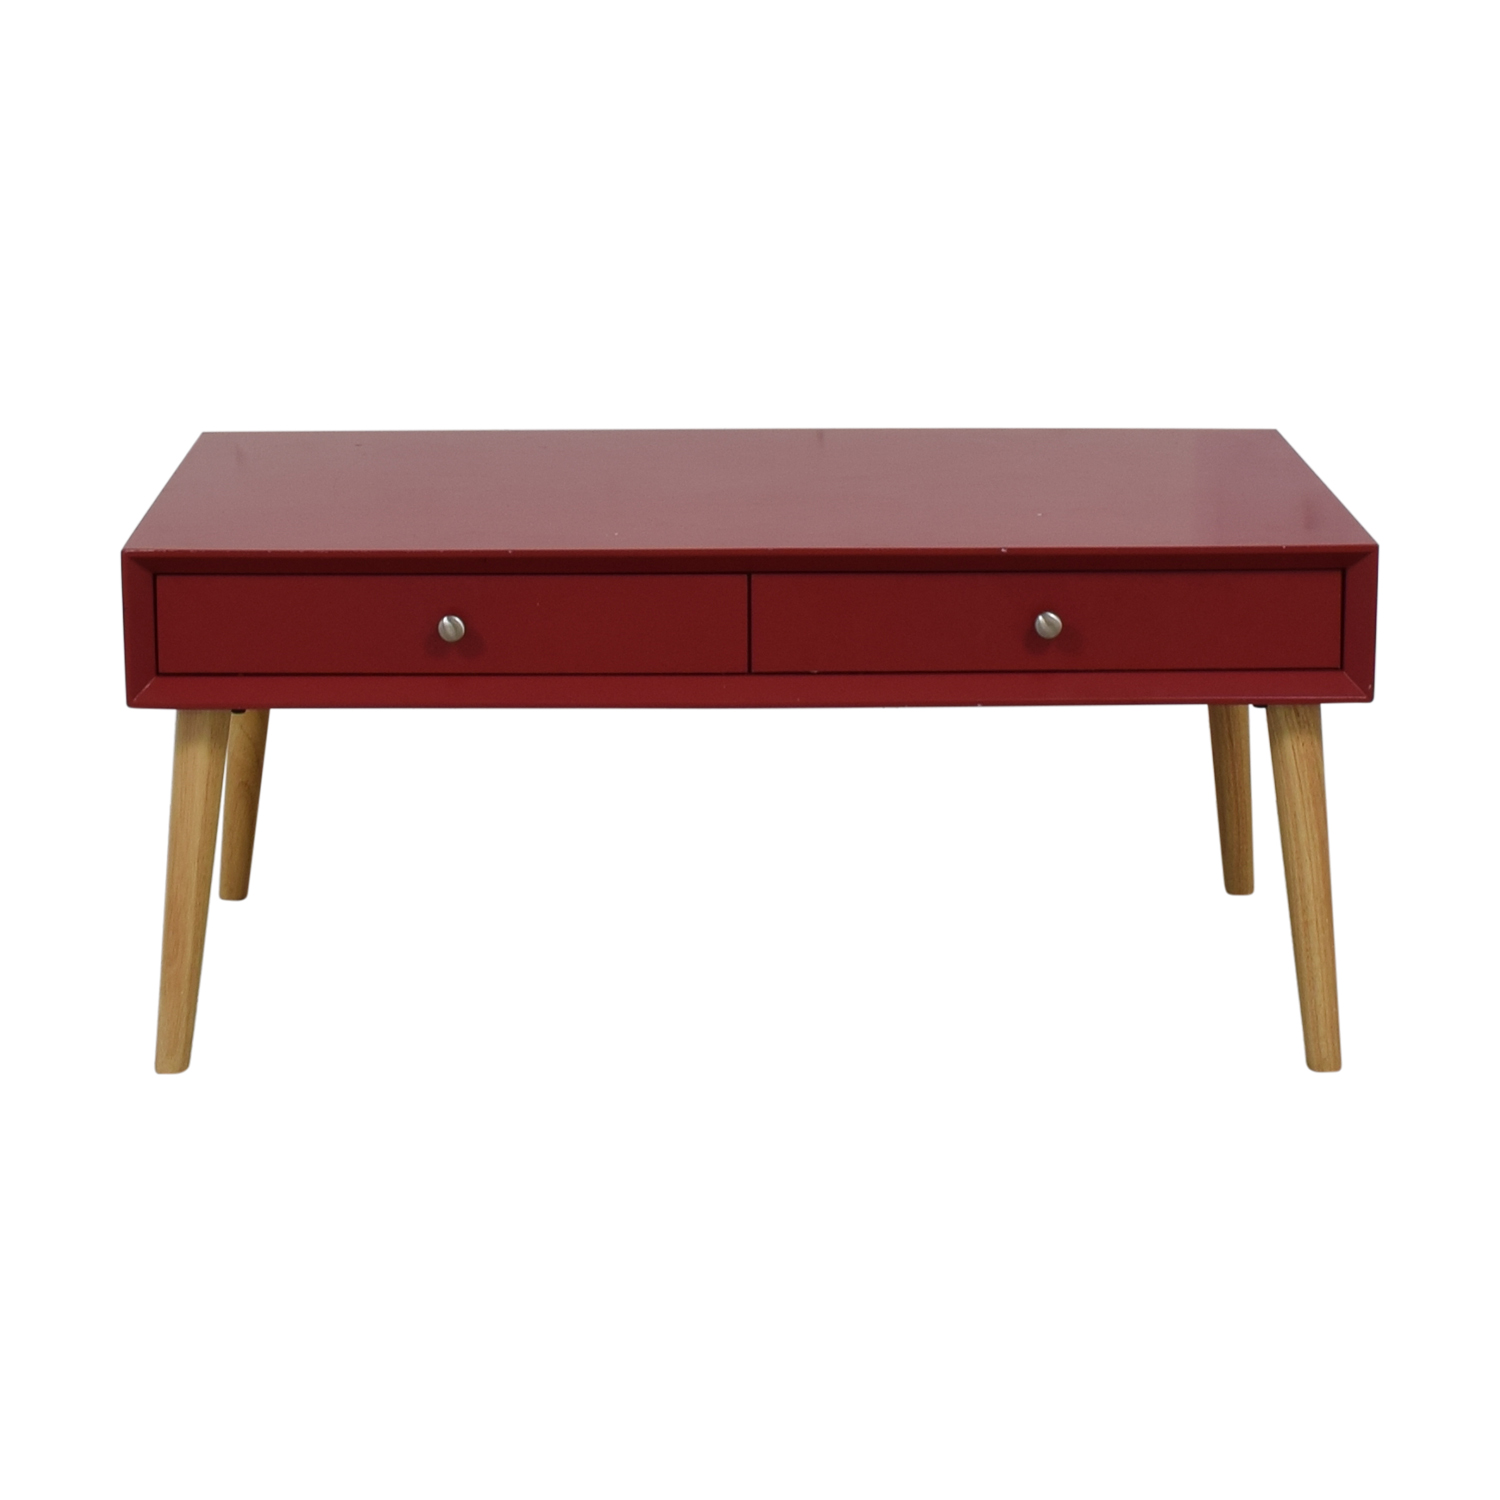 Wayfair Wayfair Red Two-Drawer Coffee Table Tables